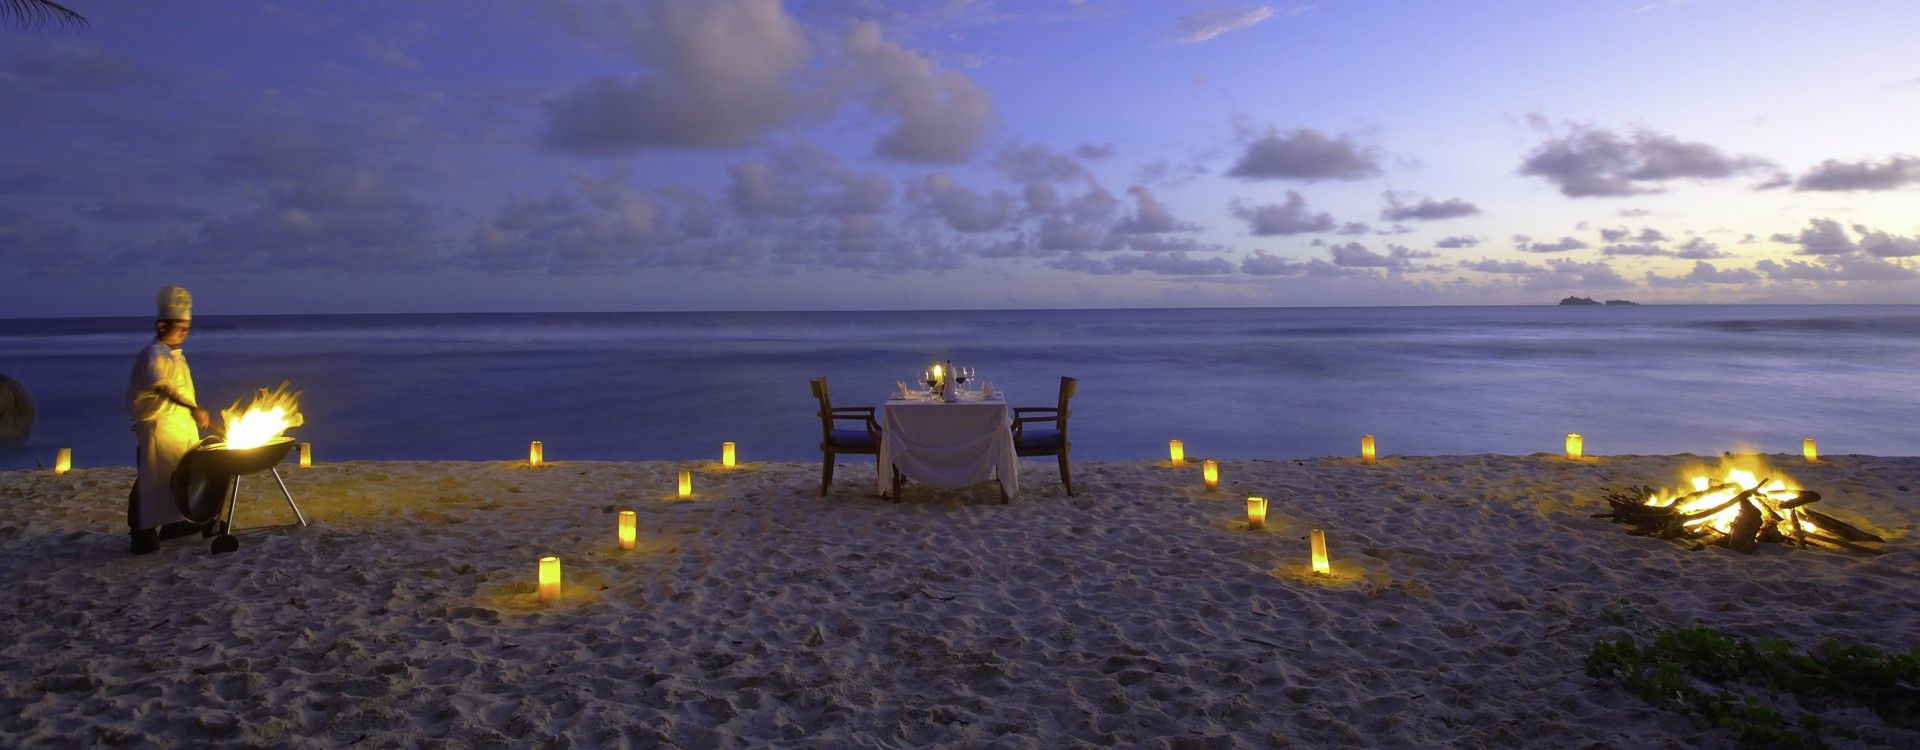 Unique Luxury Holidays to The Seychelles